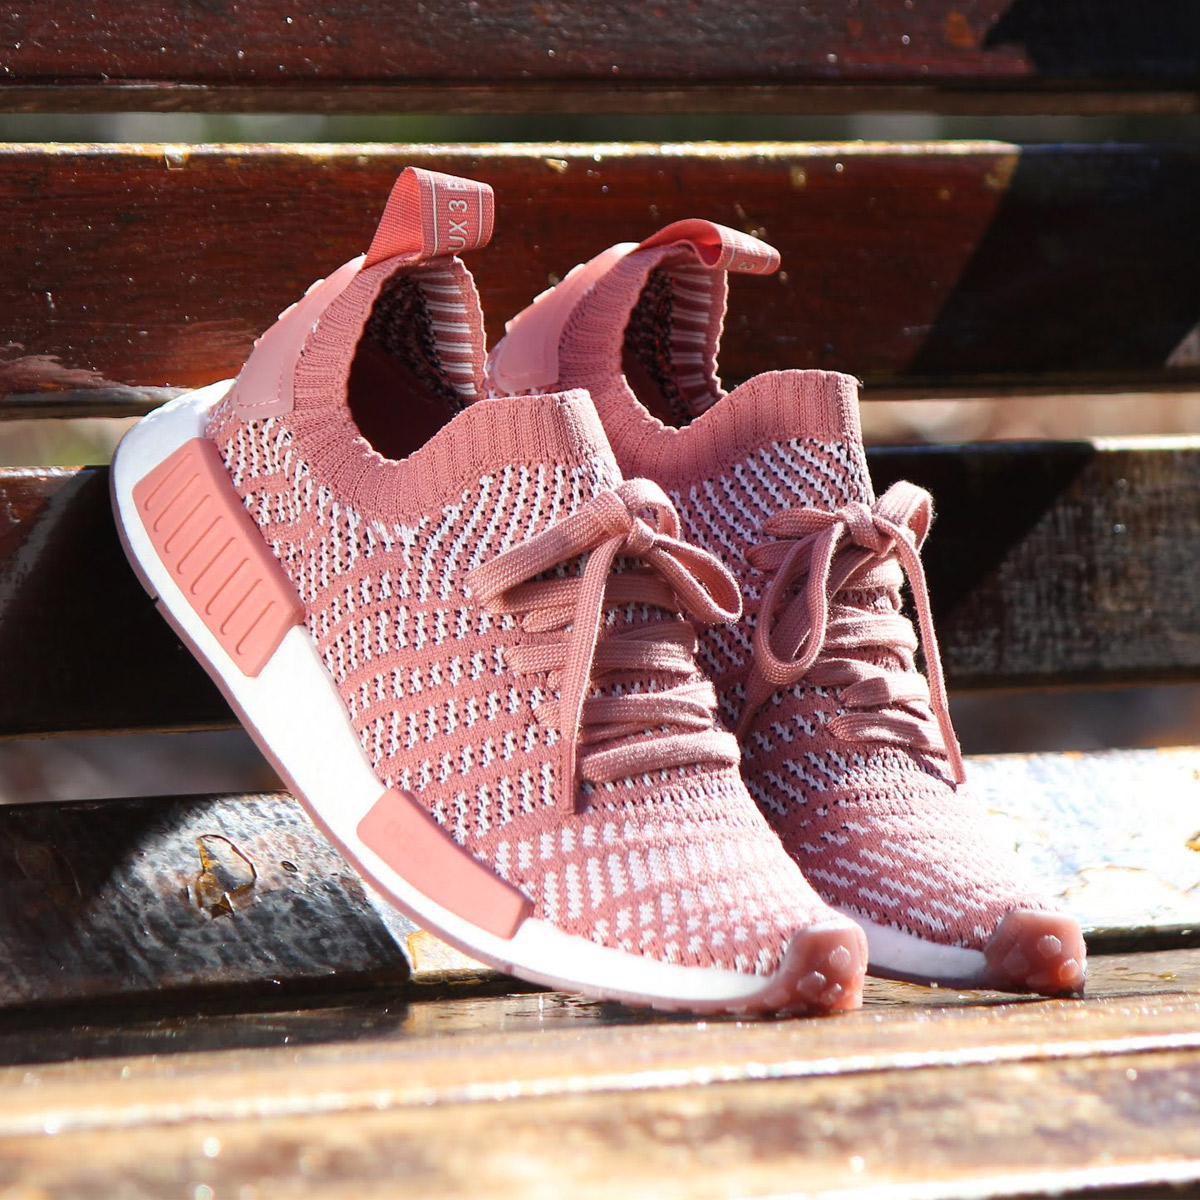 9c6a833b9c0981 atmos pink  adidas Originals NMD R1 STLT PK W (Adidas originals N M D R1  STLT PK W) Ash Pink Orchid Tint Running White 18SP-S